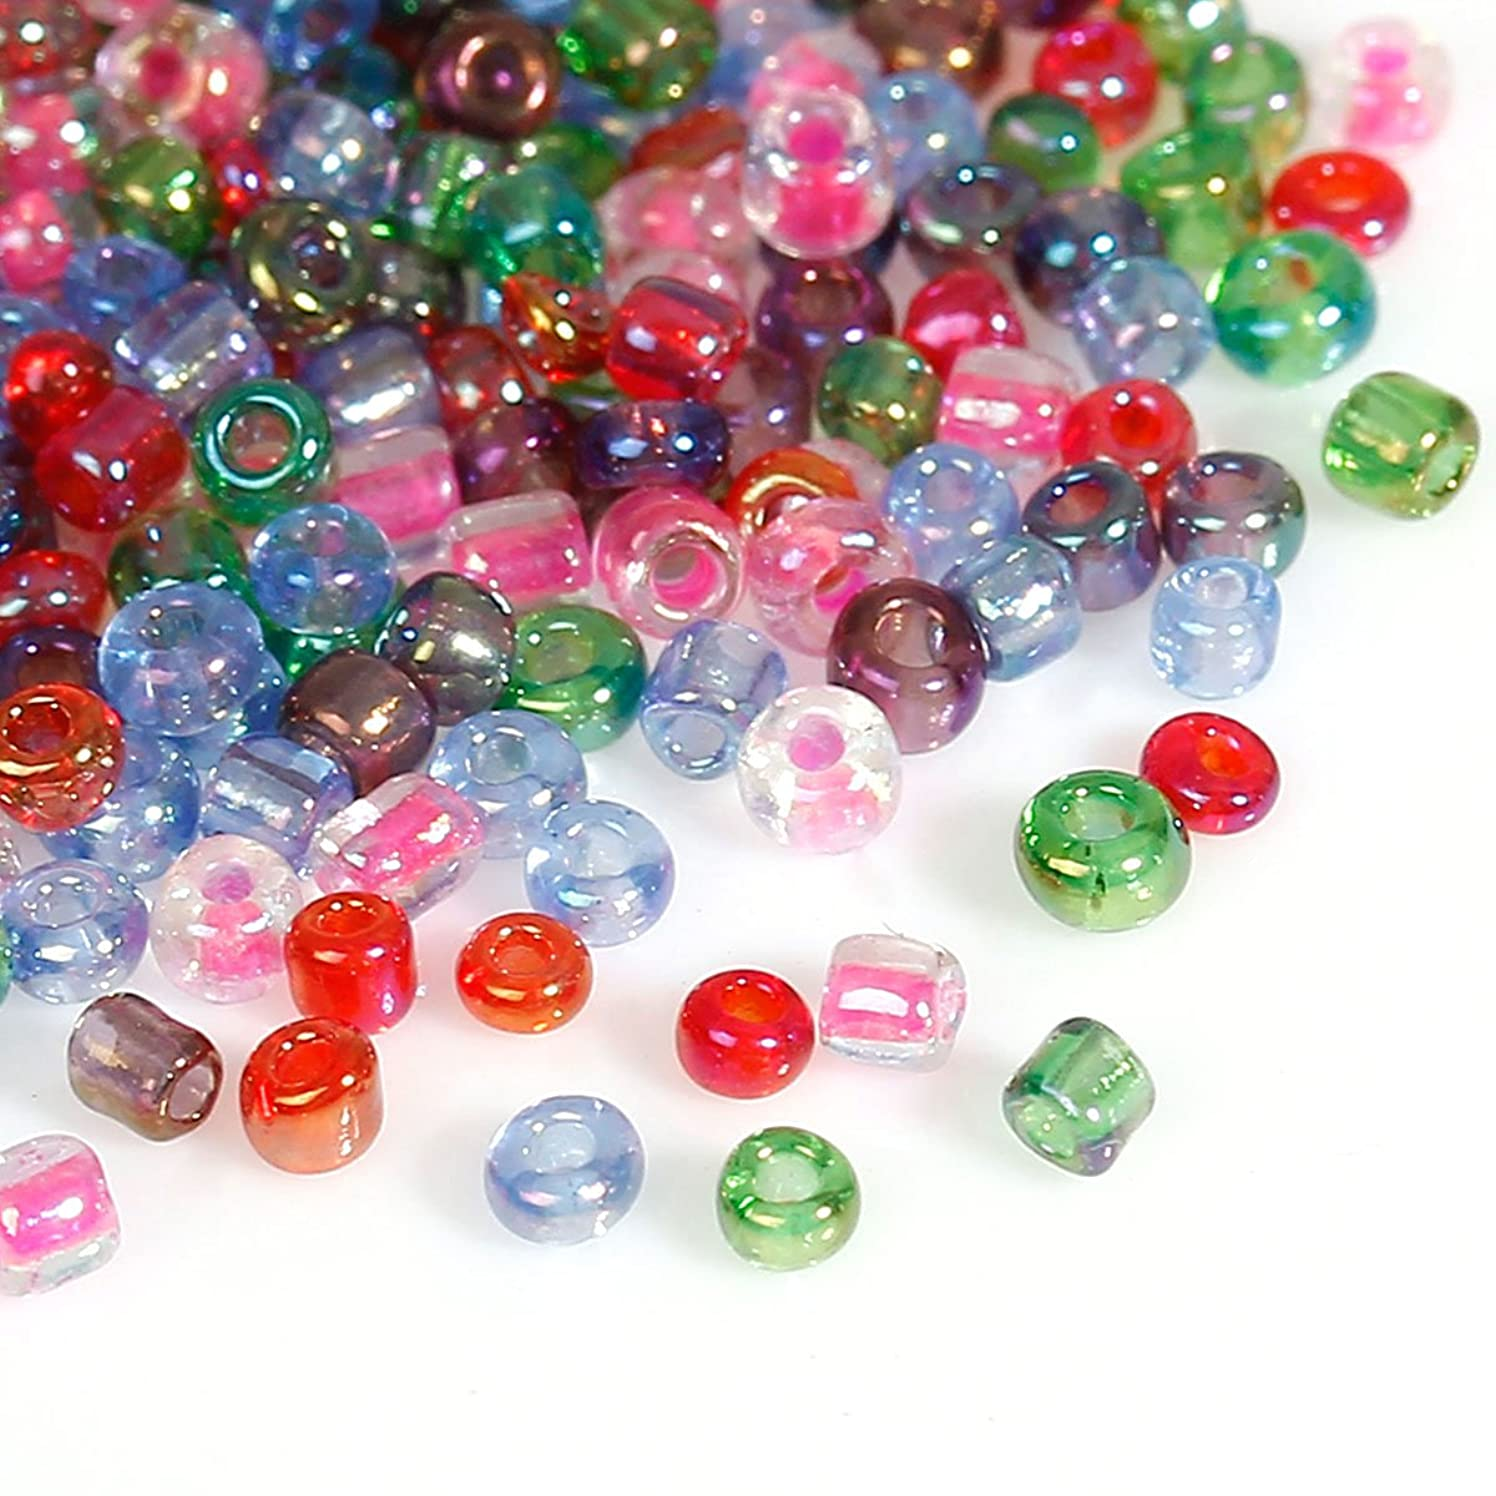 10/0 Glass Seed Beads Round About 2mm(1/8) Dia, Hole: Approx 0.6mm, 100 Grams (Rainbow AB)